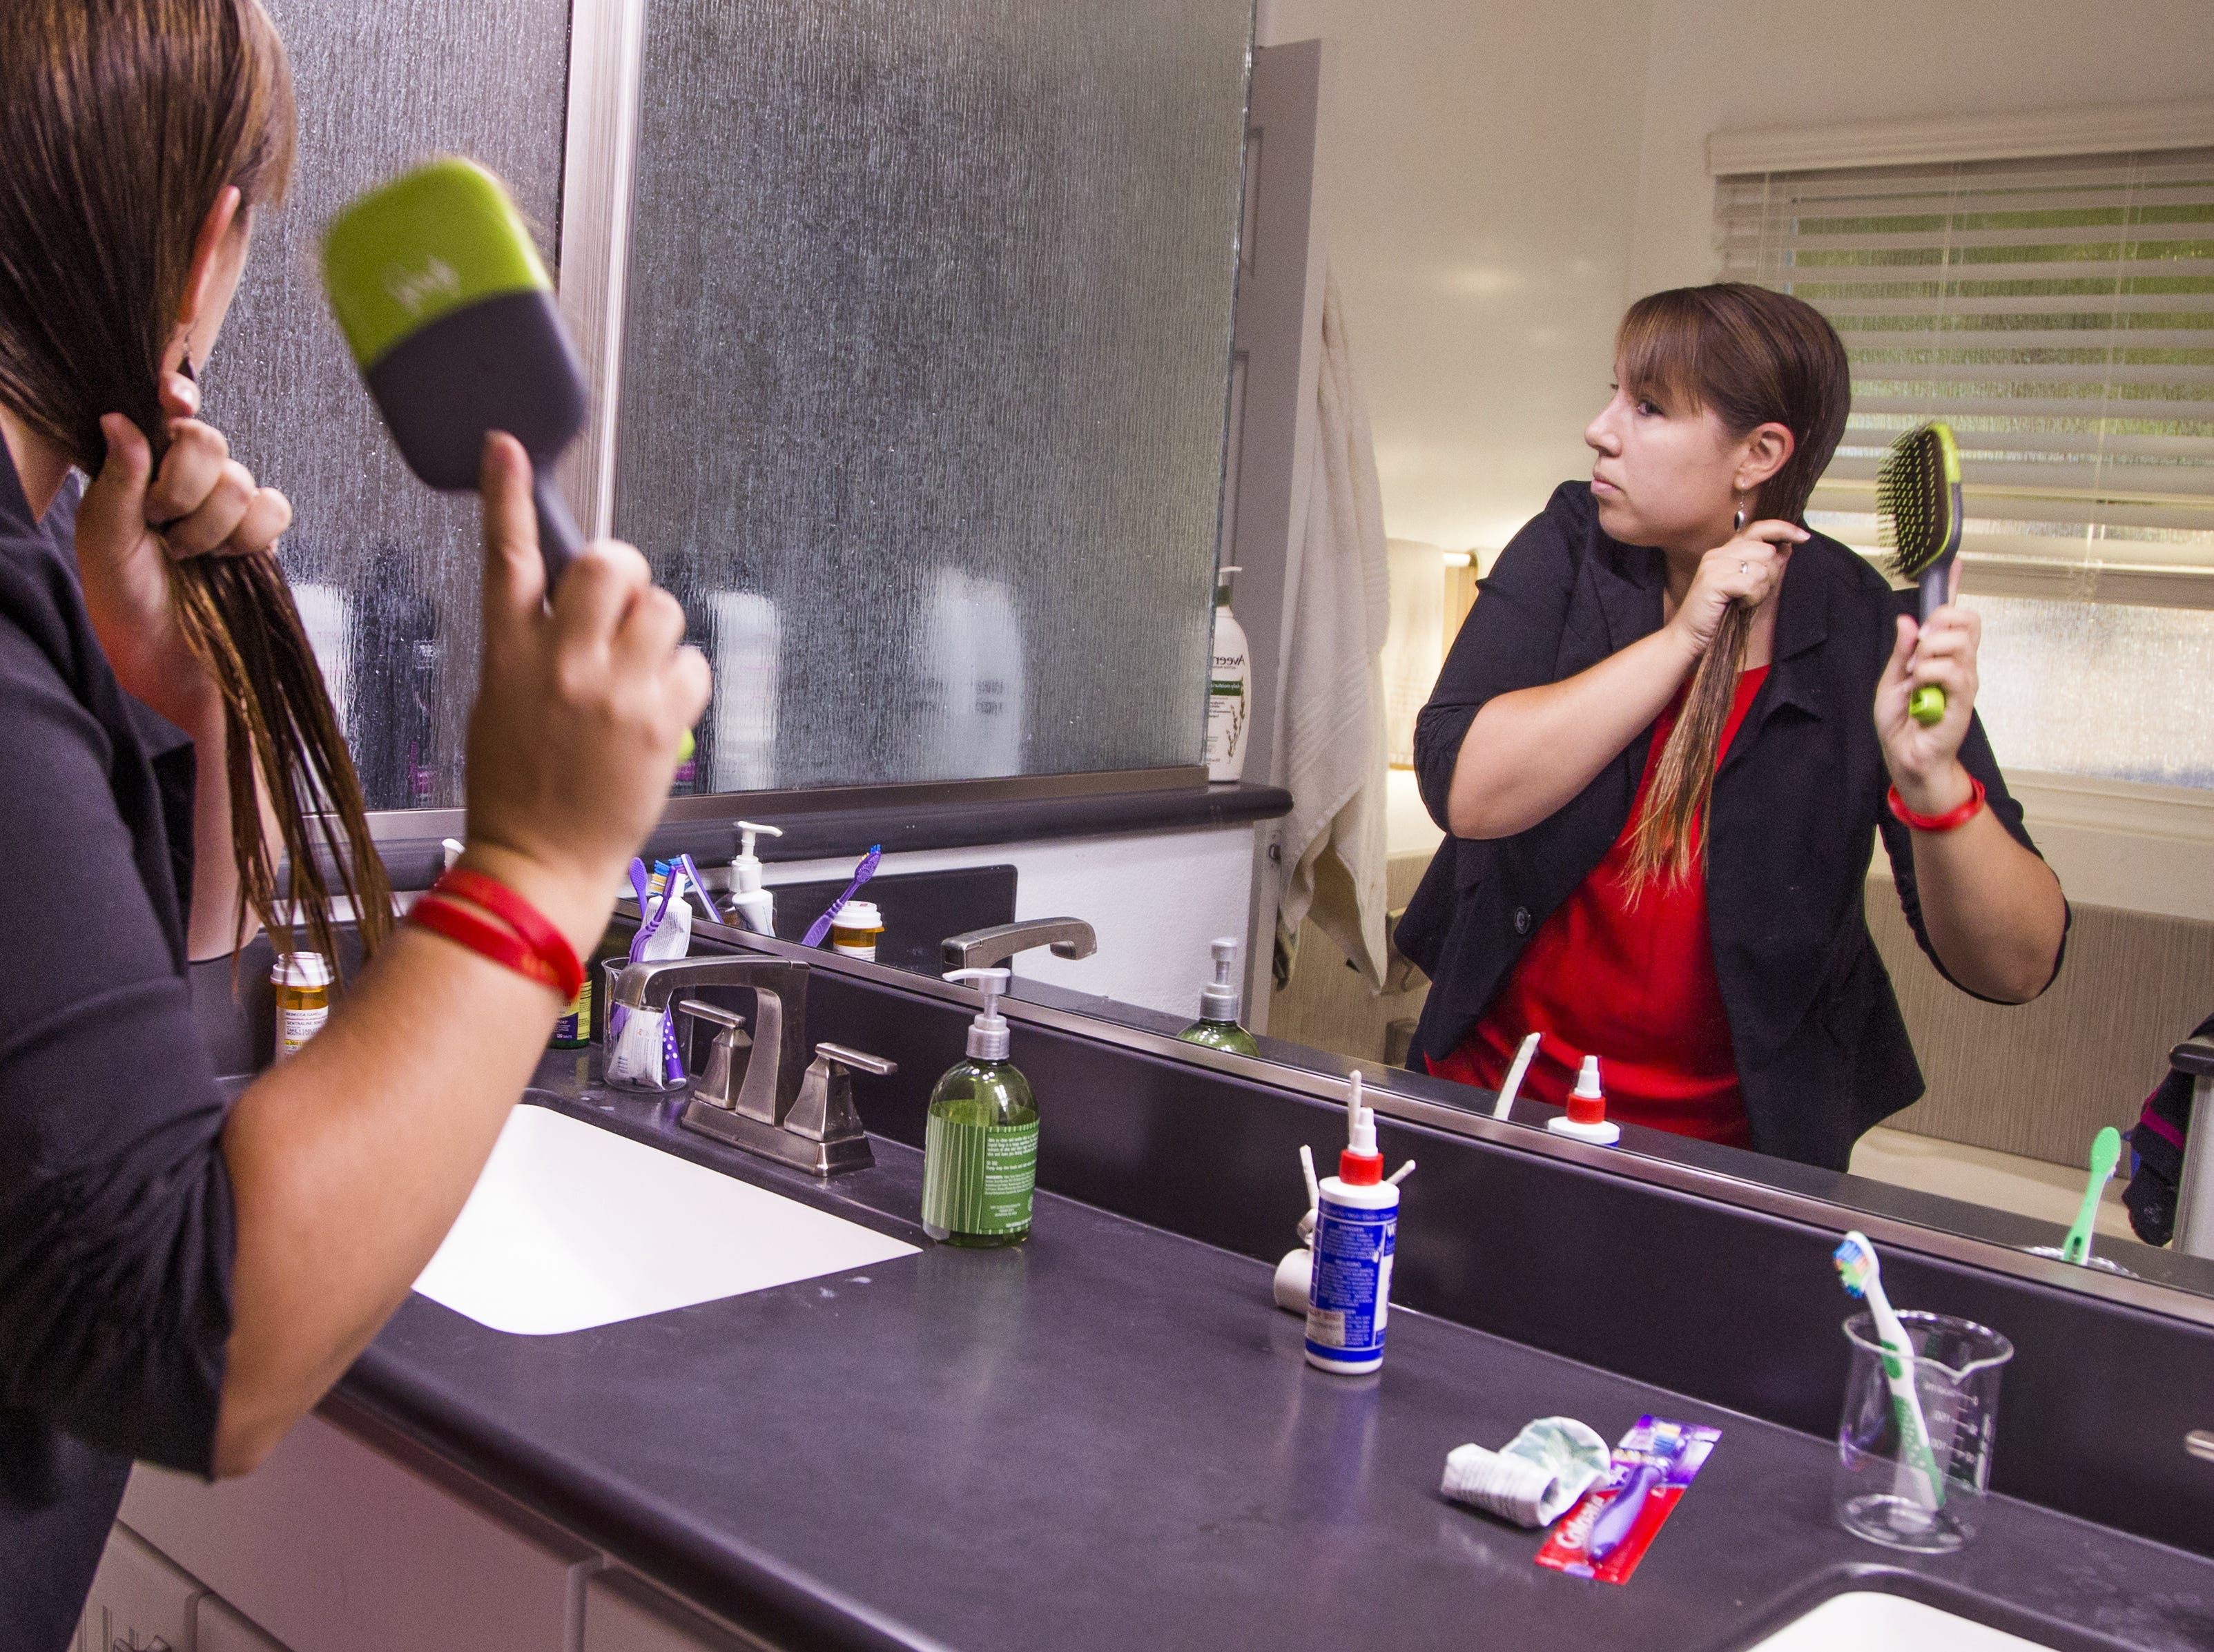 Rebecca Garelli brushes her hair at 6:40 am before heading out for her 30-mile commute to Sevilla West Elementary School in Phoenix, Monday, September 17, 2018. Garelli has been one of the leaders of the #RedforEd movement, demanding increased funding for education in Arizona.